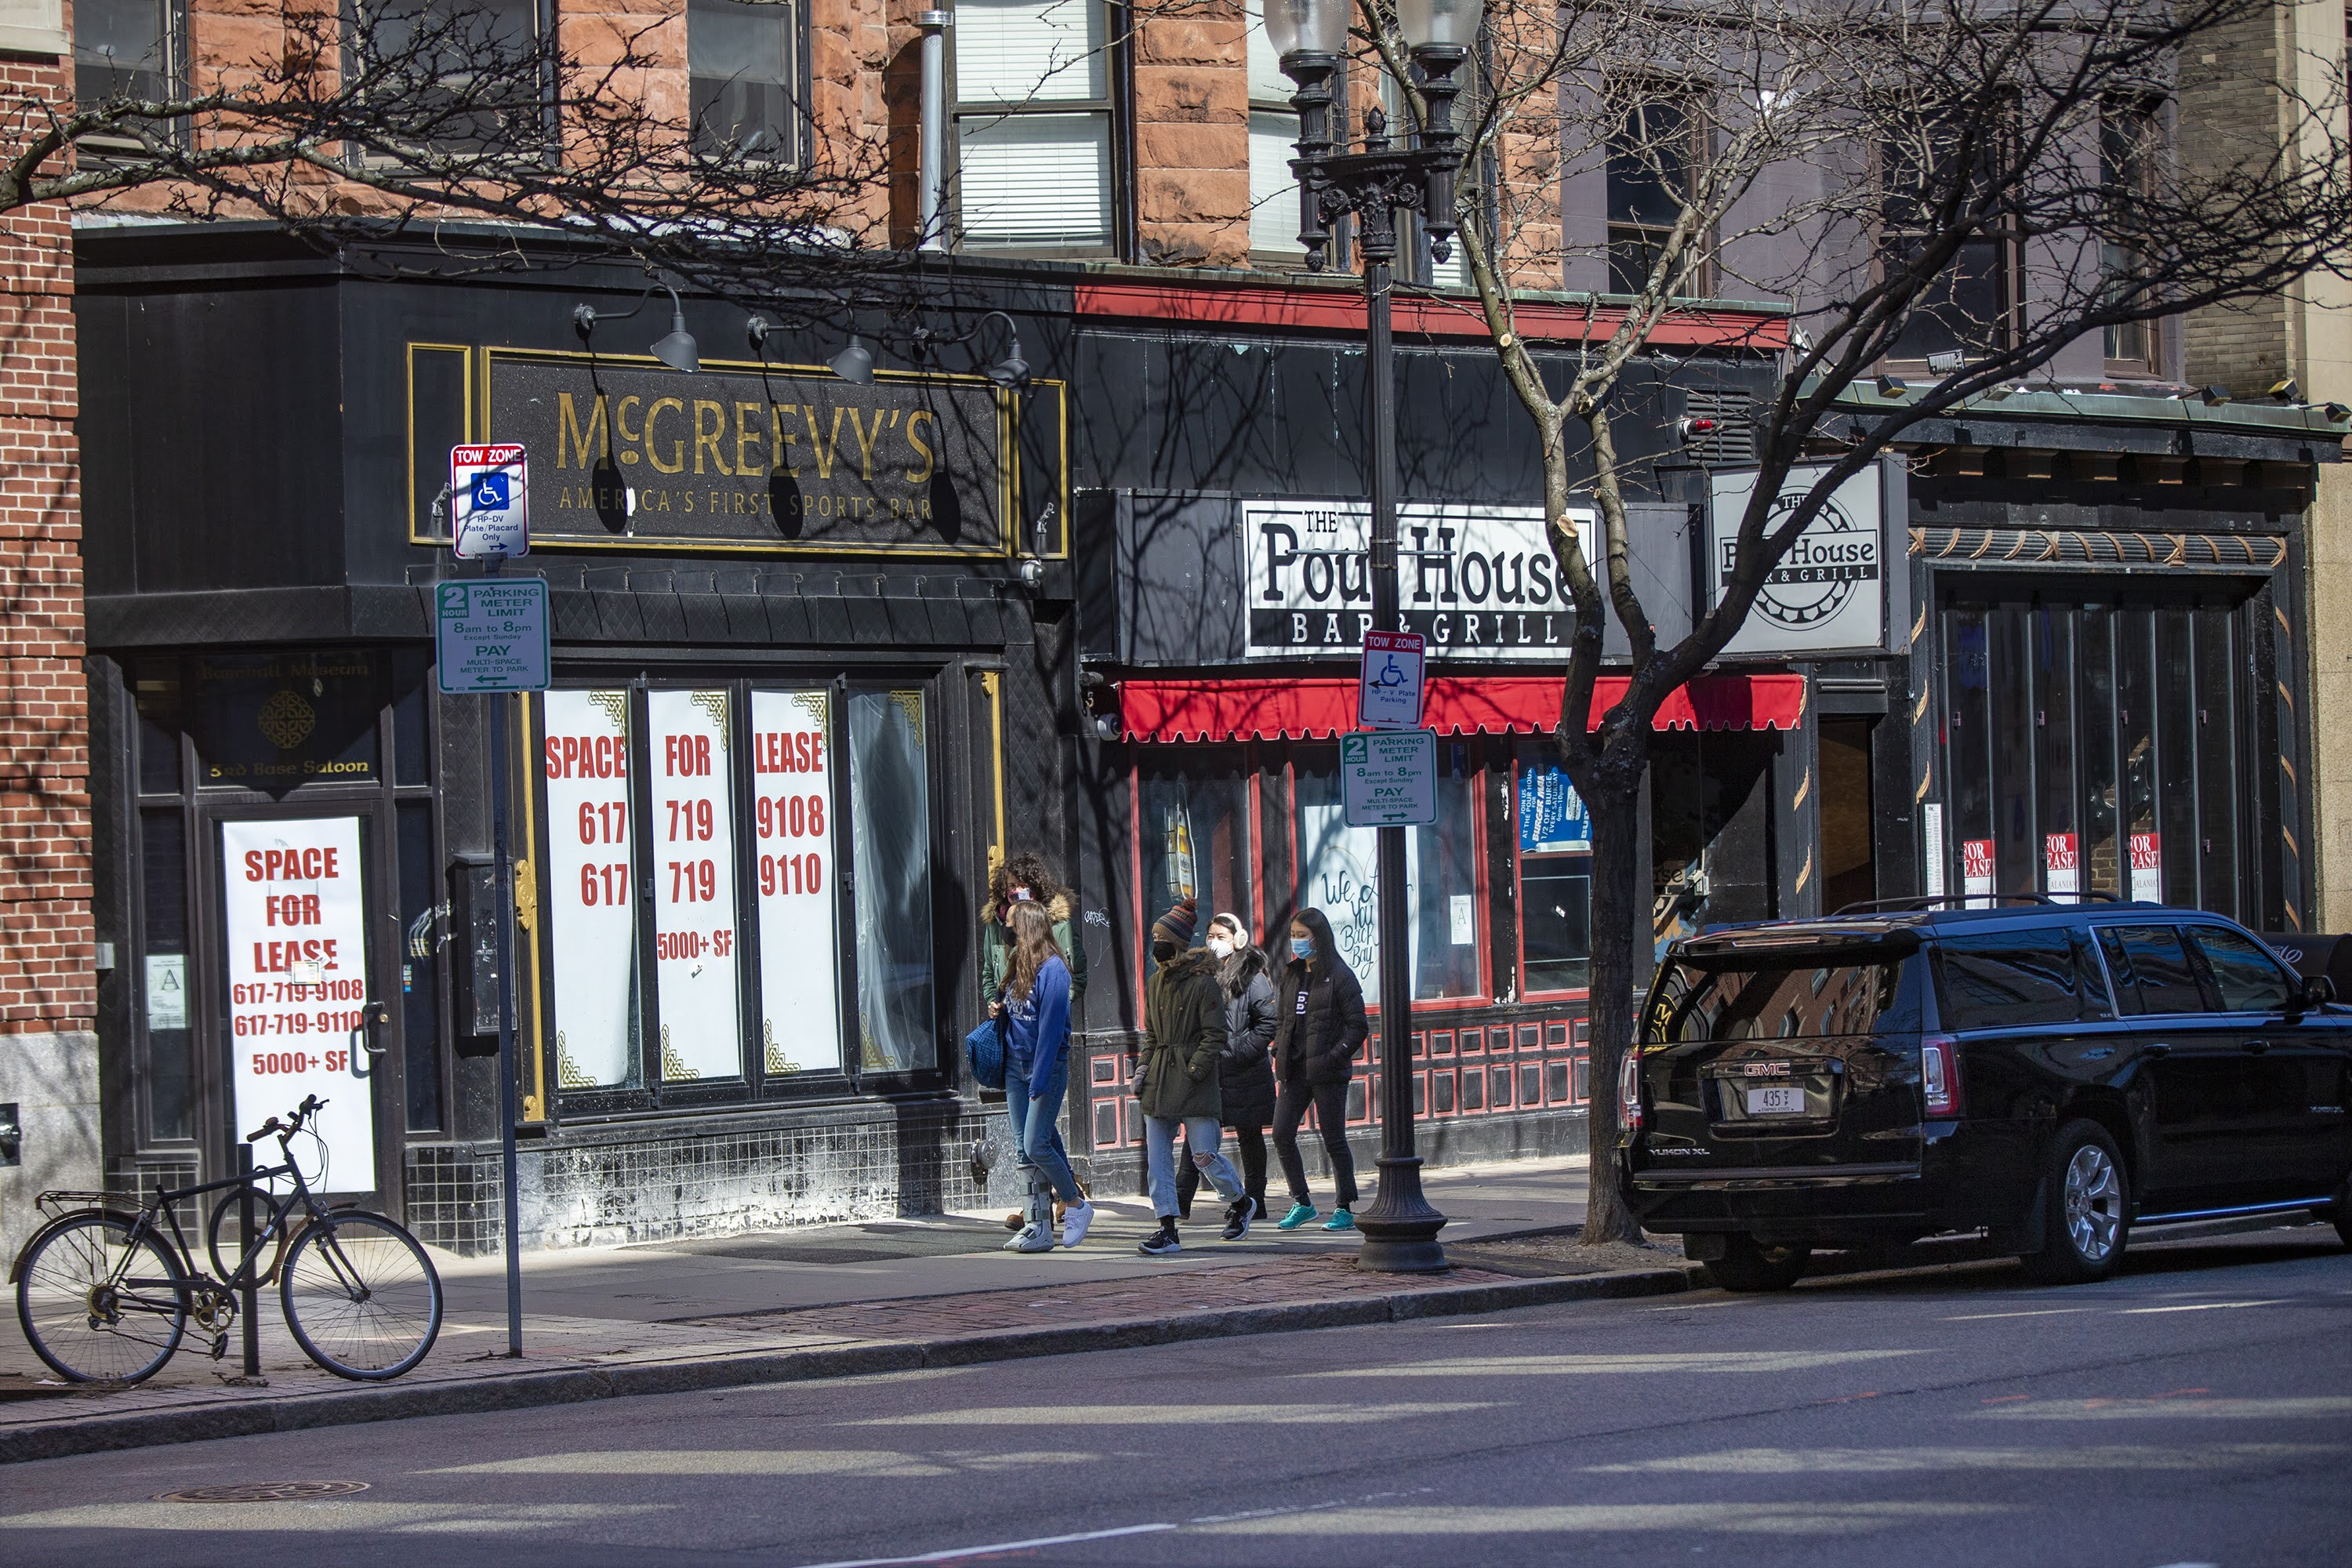 McGreevey's, Pour House, and Lir on Boylston Street have all closed since the start of the pandemic. (Jesse Costa/WBUR)